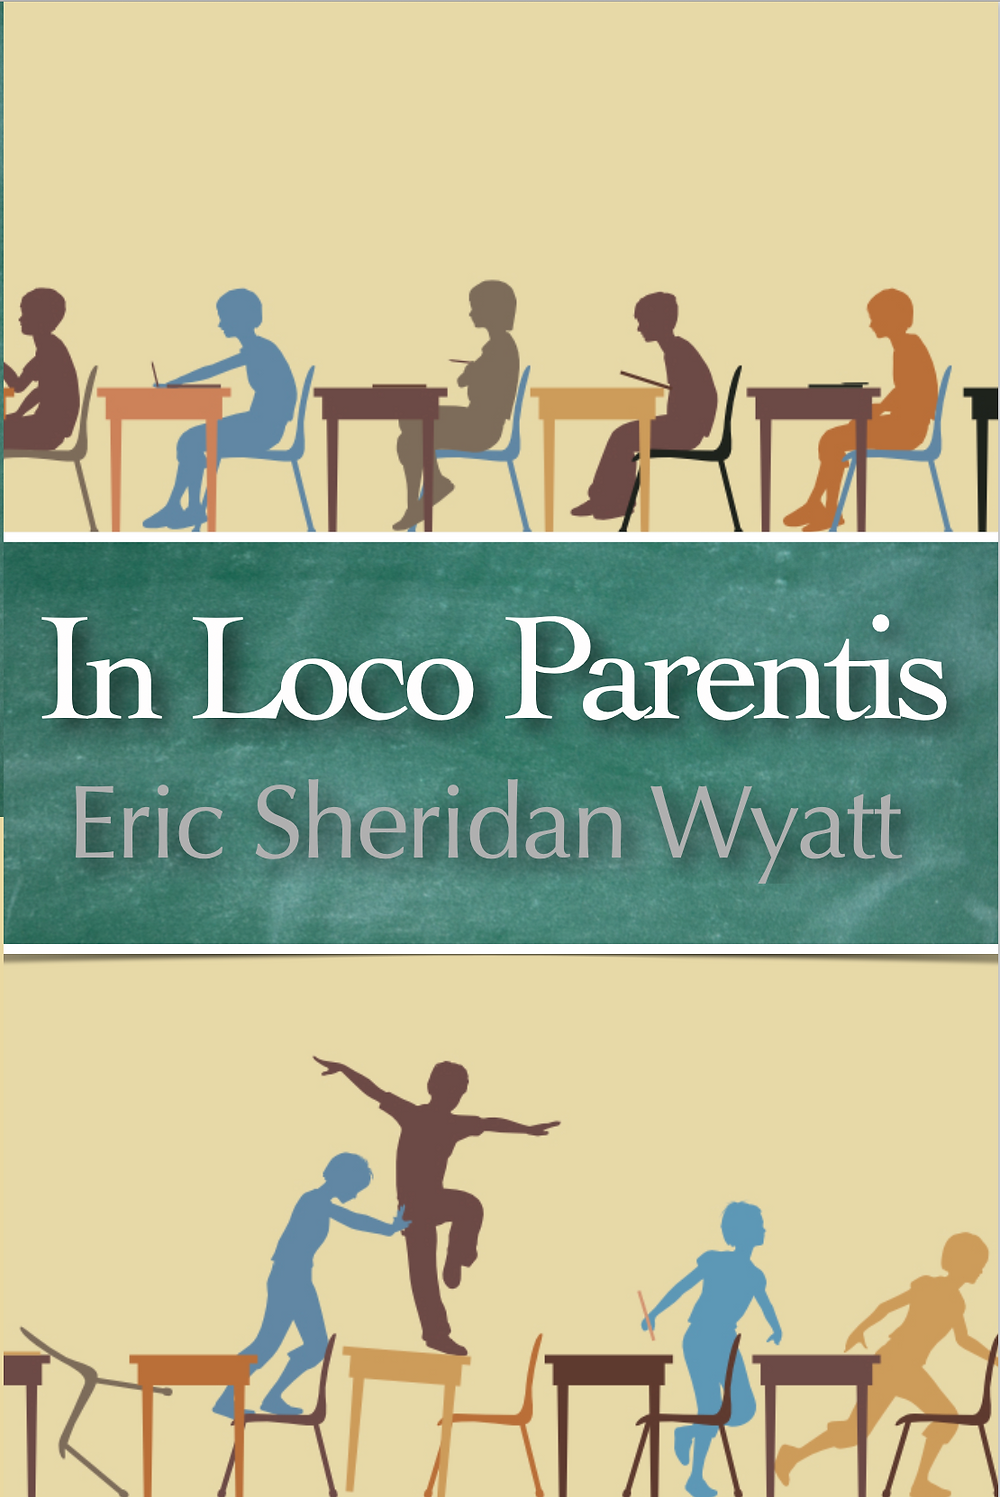 The retail, paperback version of In Loco Parentis, available at Amazon or your local book retailer.